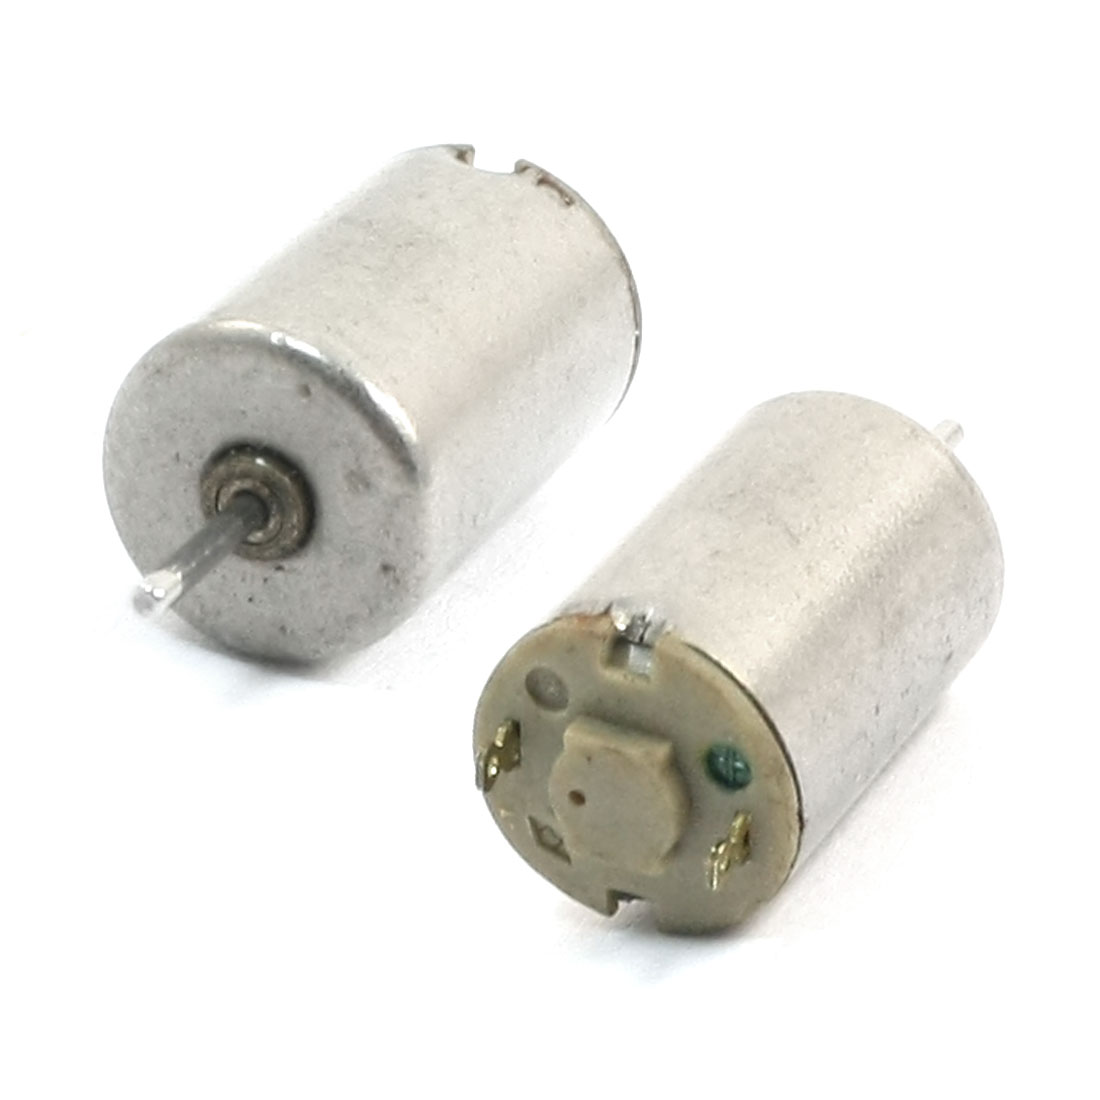 2Pcs-DIY-RC-Aircraft-Parts-1mm-Dia-Shaft-Mini-DC-Coreless-Motor-3V-18000RPM